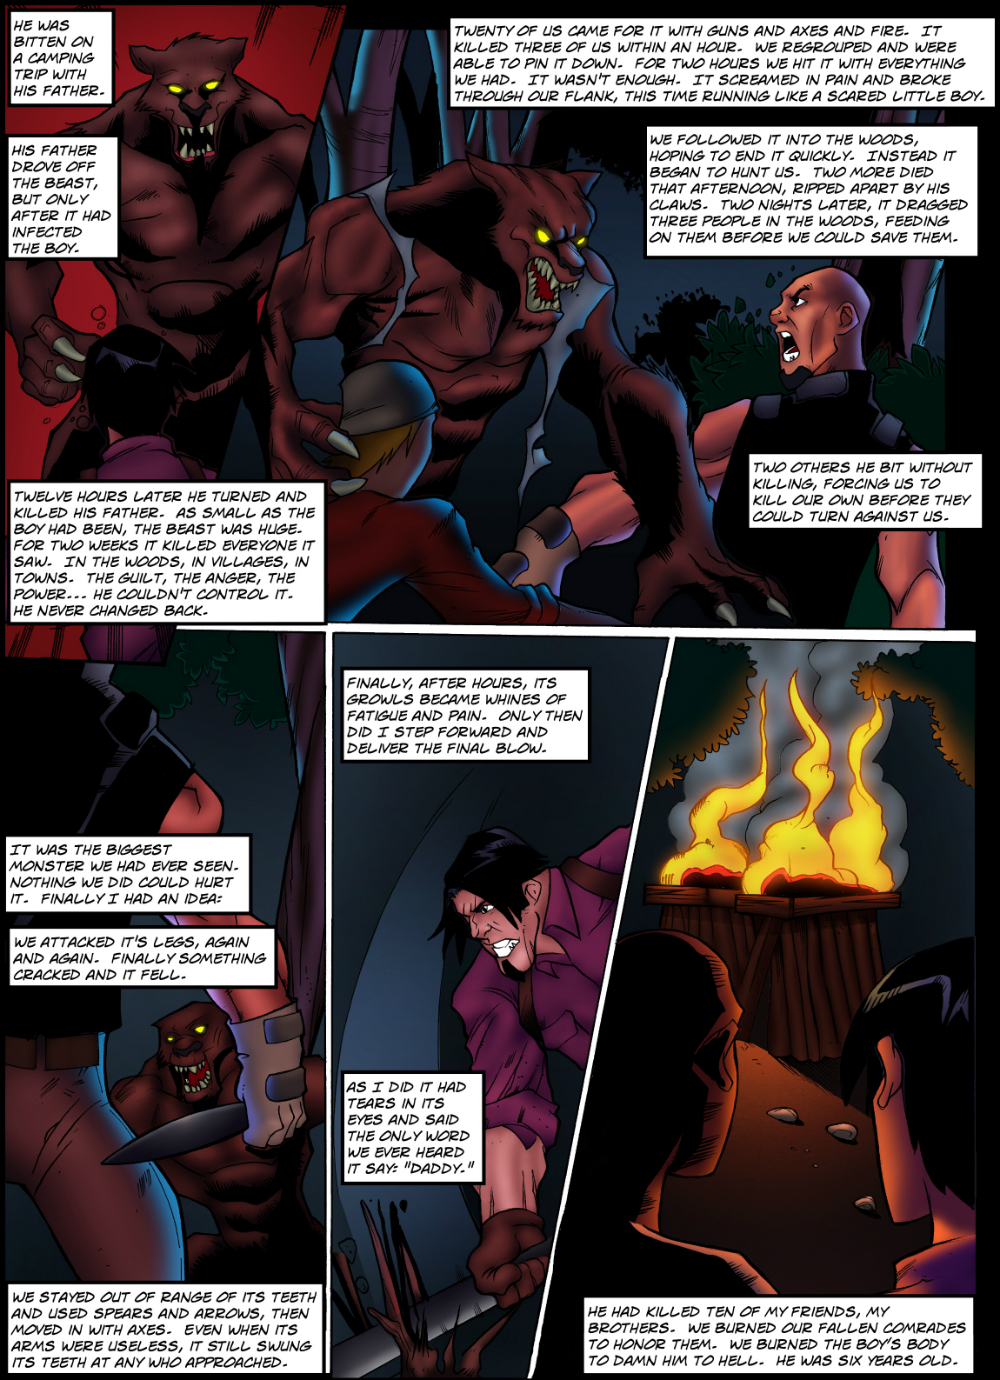 TROPHIES page 6 - story 16